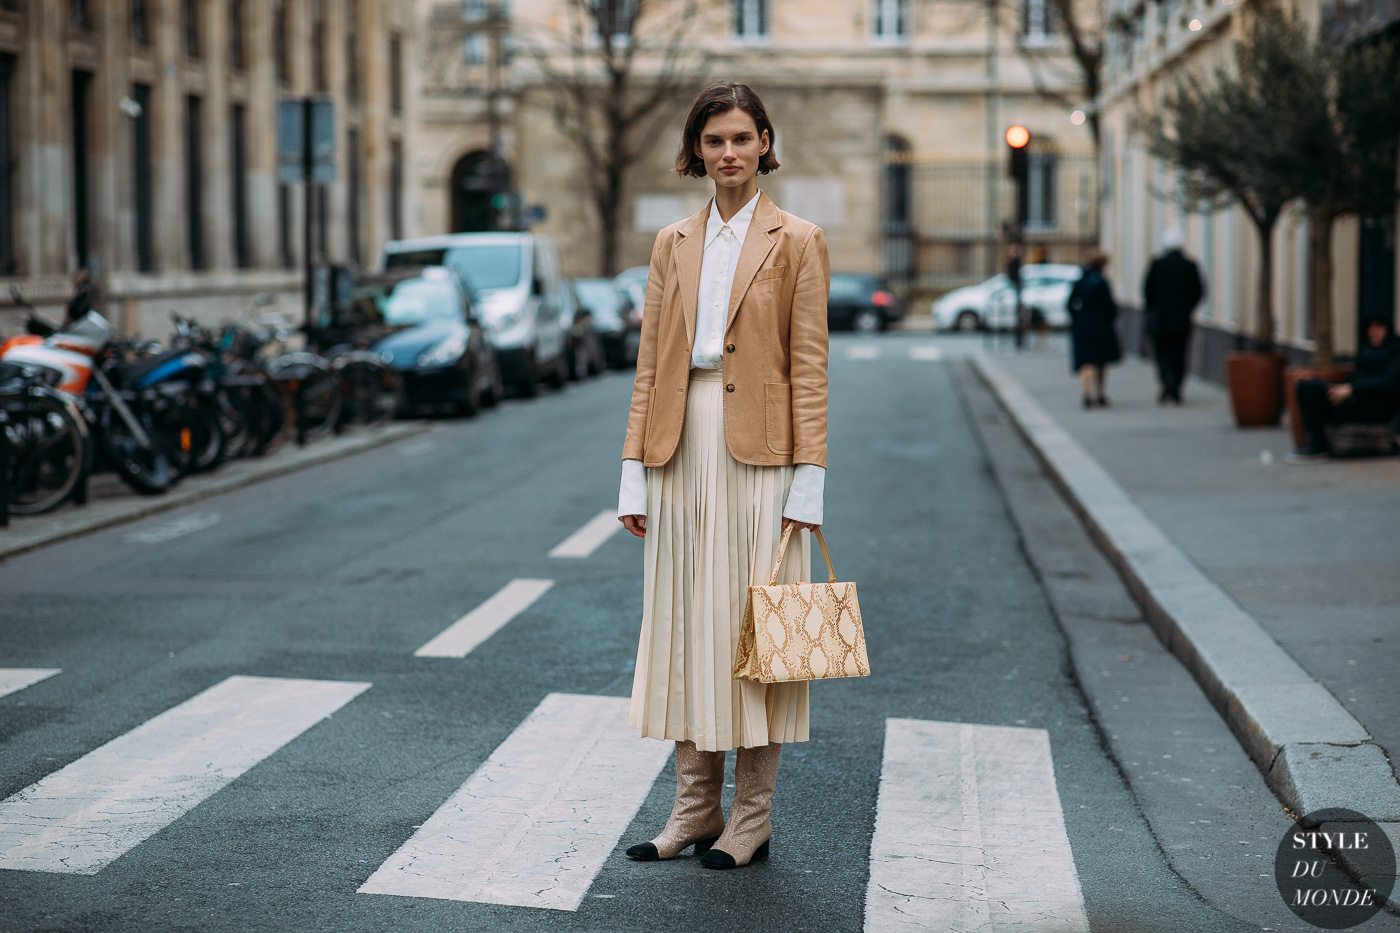 Giedre Dukauskaite by STYLEDUMONDE Street Style Fashion Photography FW18 20180305_48A8468